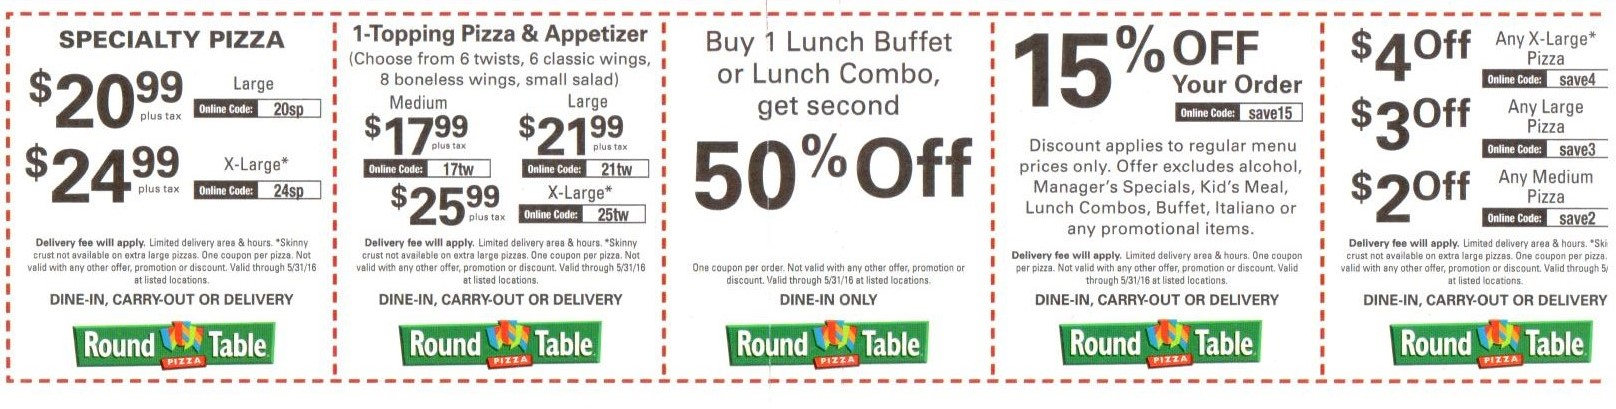 Round table discount coupons